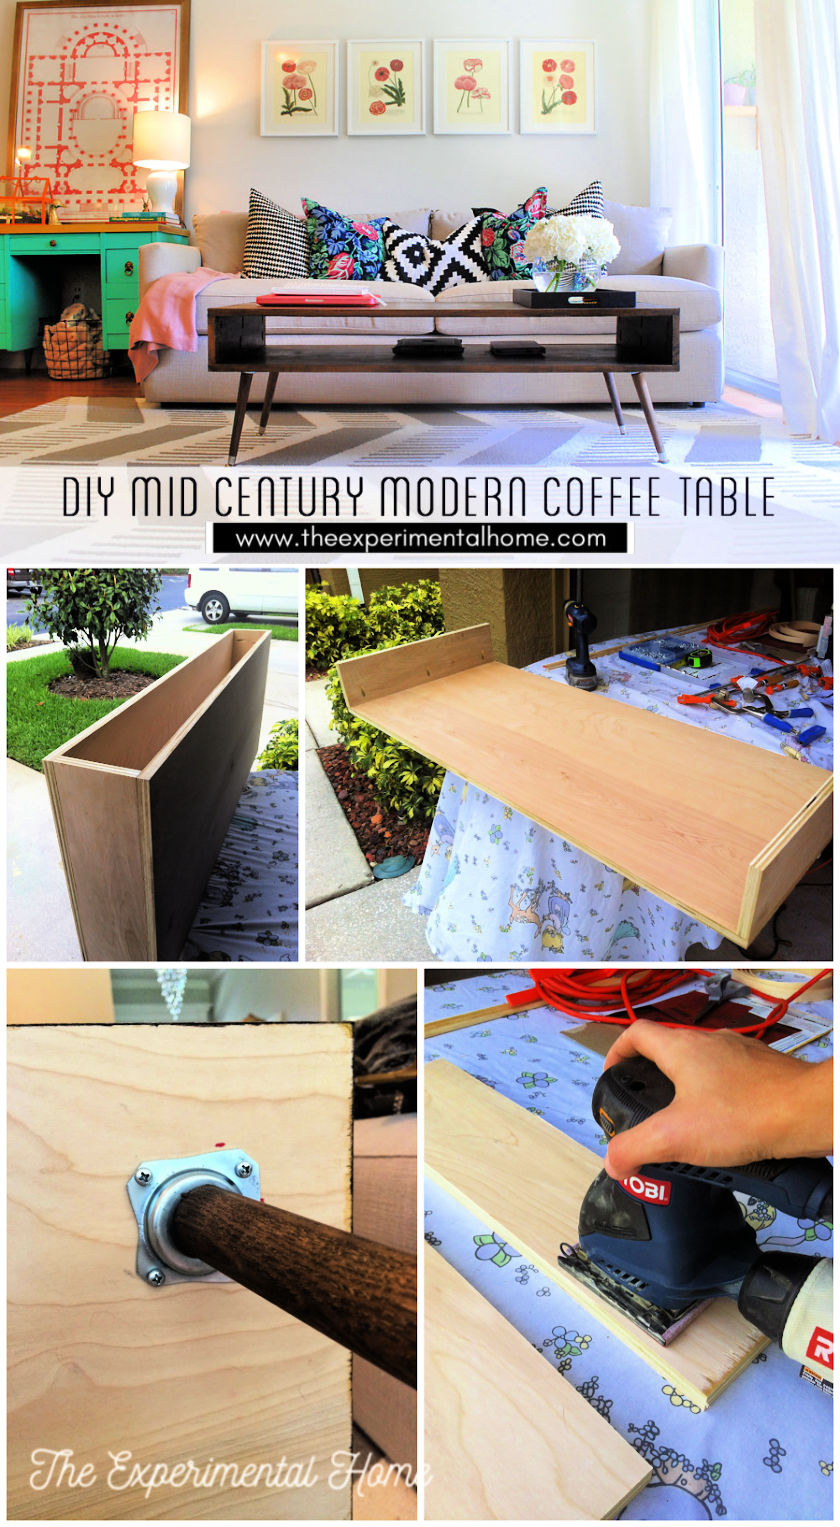 DIY Mid Century Modern Coffee Table with Step by Step Plan